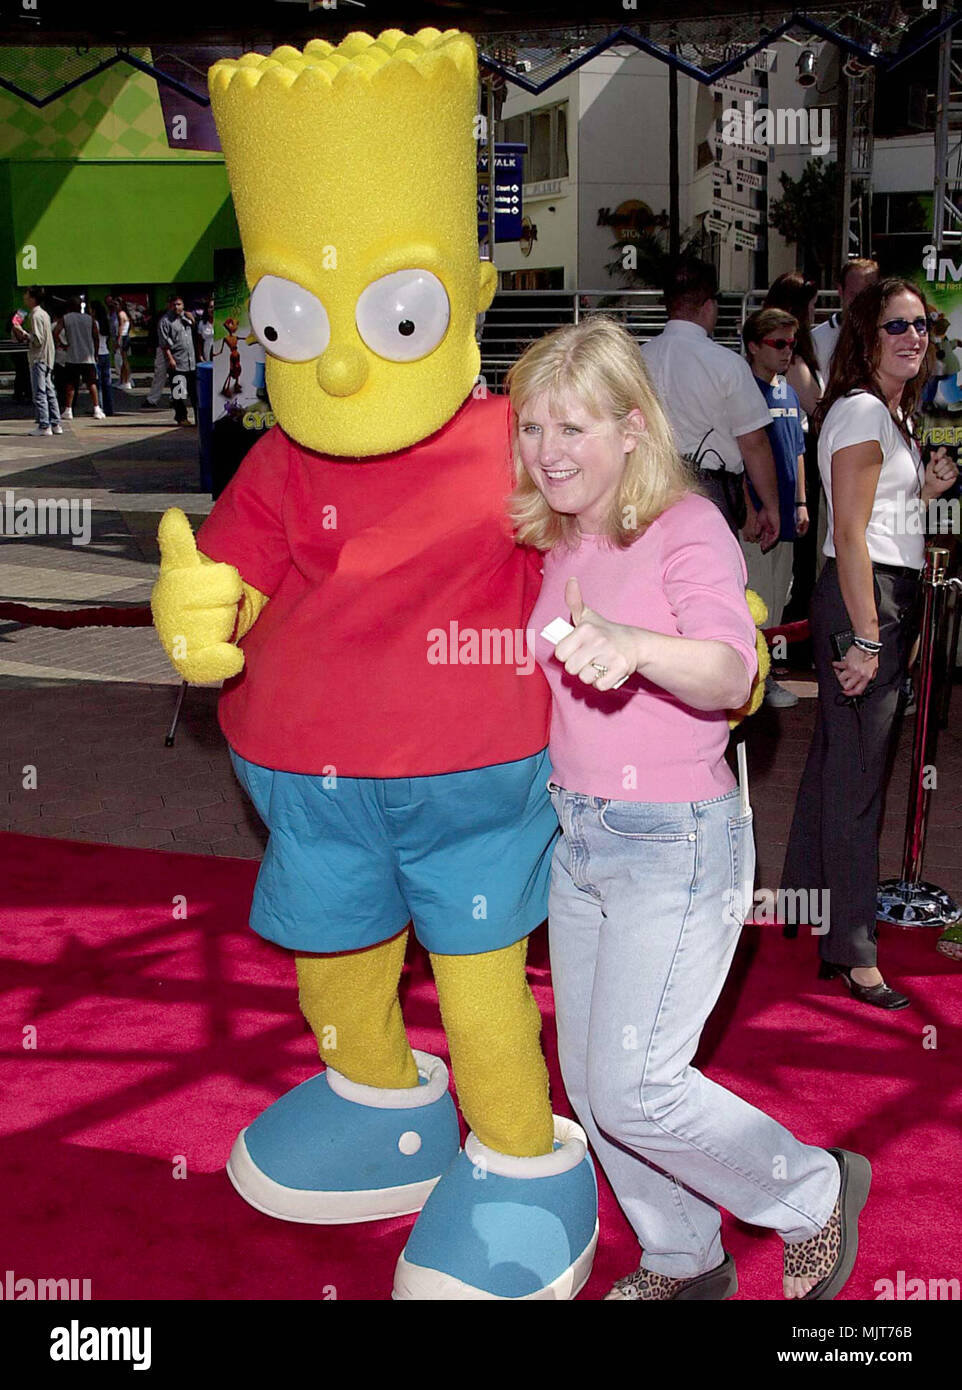 01 Oct 2000, Los Angeles, California, USA --- Nancy Cartwright and Bart Simpson at the 3 Dimensions Imax Feature of the animated 'Cyberworld 3D'. 10.1.00-Los Angeles, CA --- ' Tsuni / USA 'Nancy Cartwright and Bart Simpson Nancy Cartwright and Bart Simpson inquiry tsuni@Gamma-USA.com - Stock Image